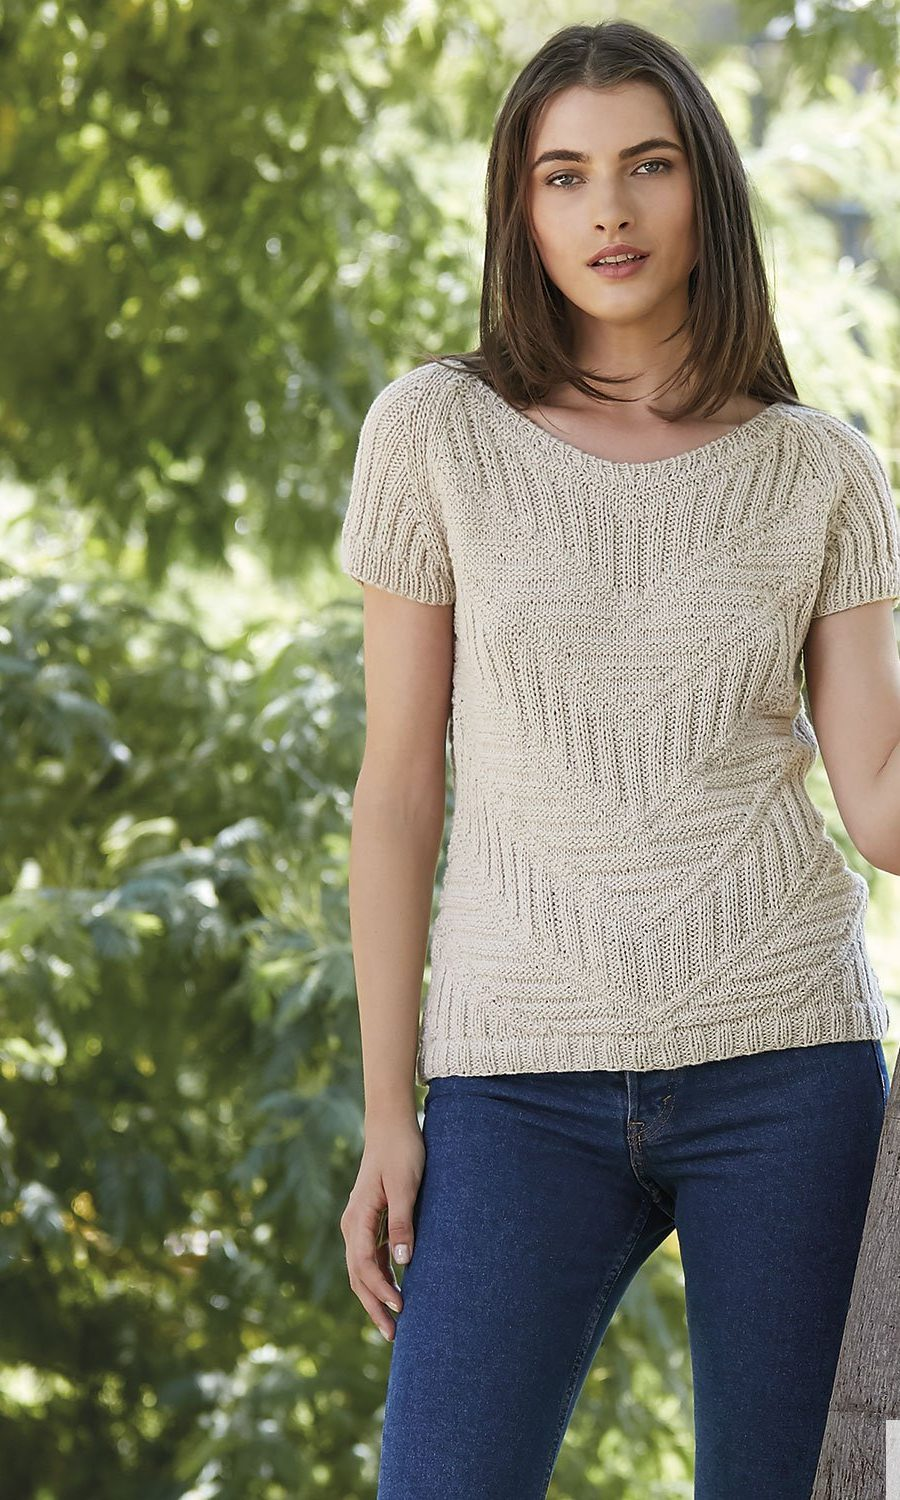 pattern-knit-crochet-woman-sweater-spring-summer-katia-6123-5-g